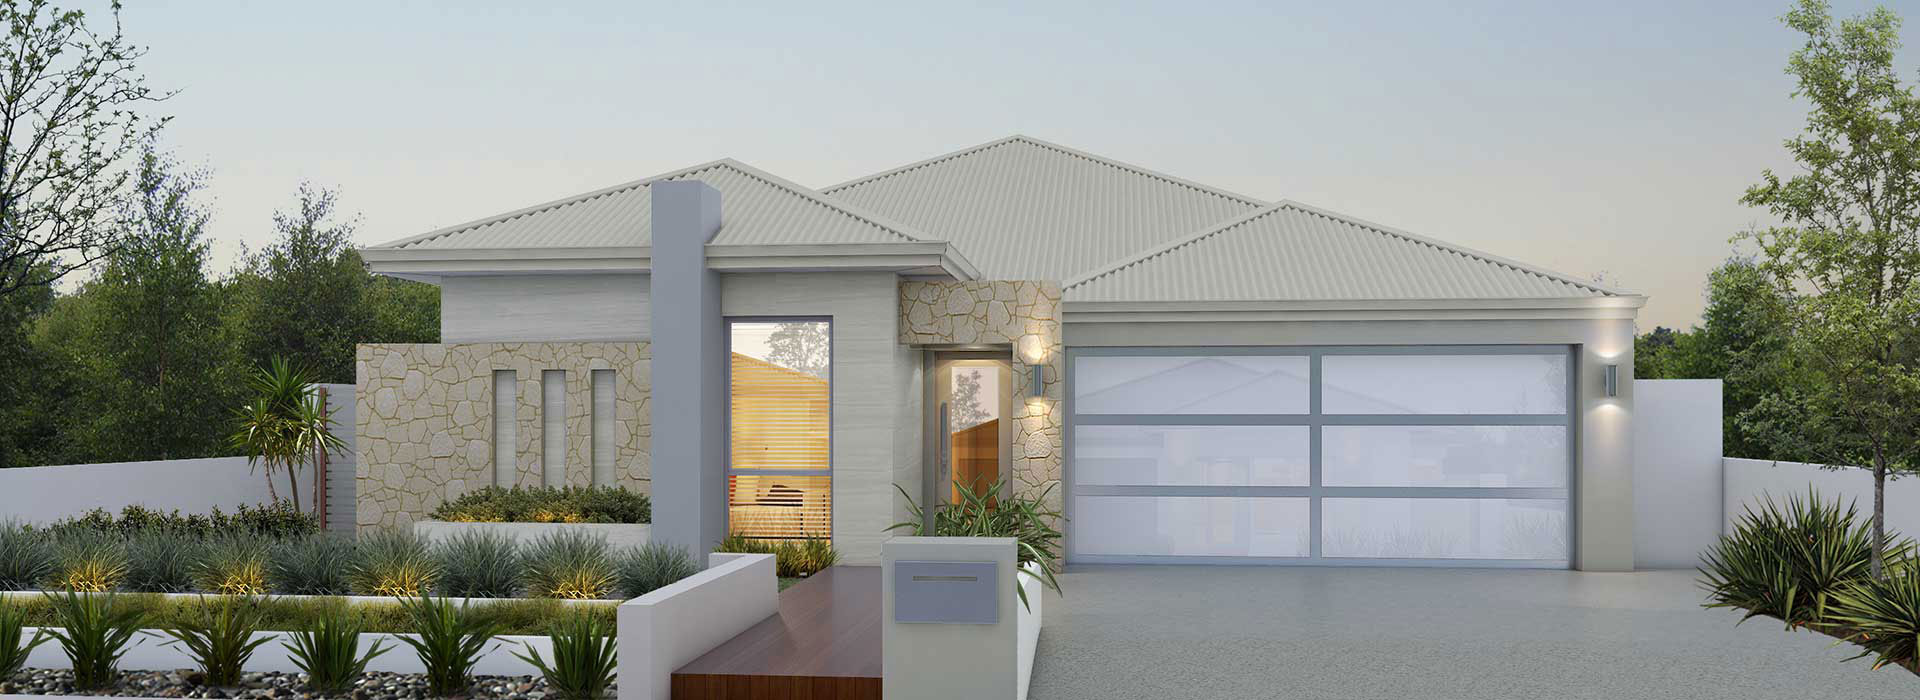 """Home frontage of single storey home """"My Sorrento"""", designed and built in Perth by My Homes WA"""